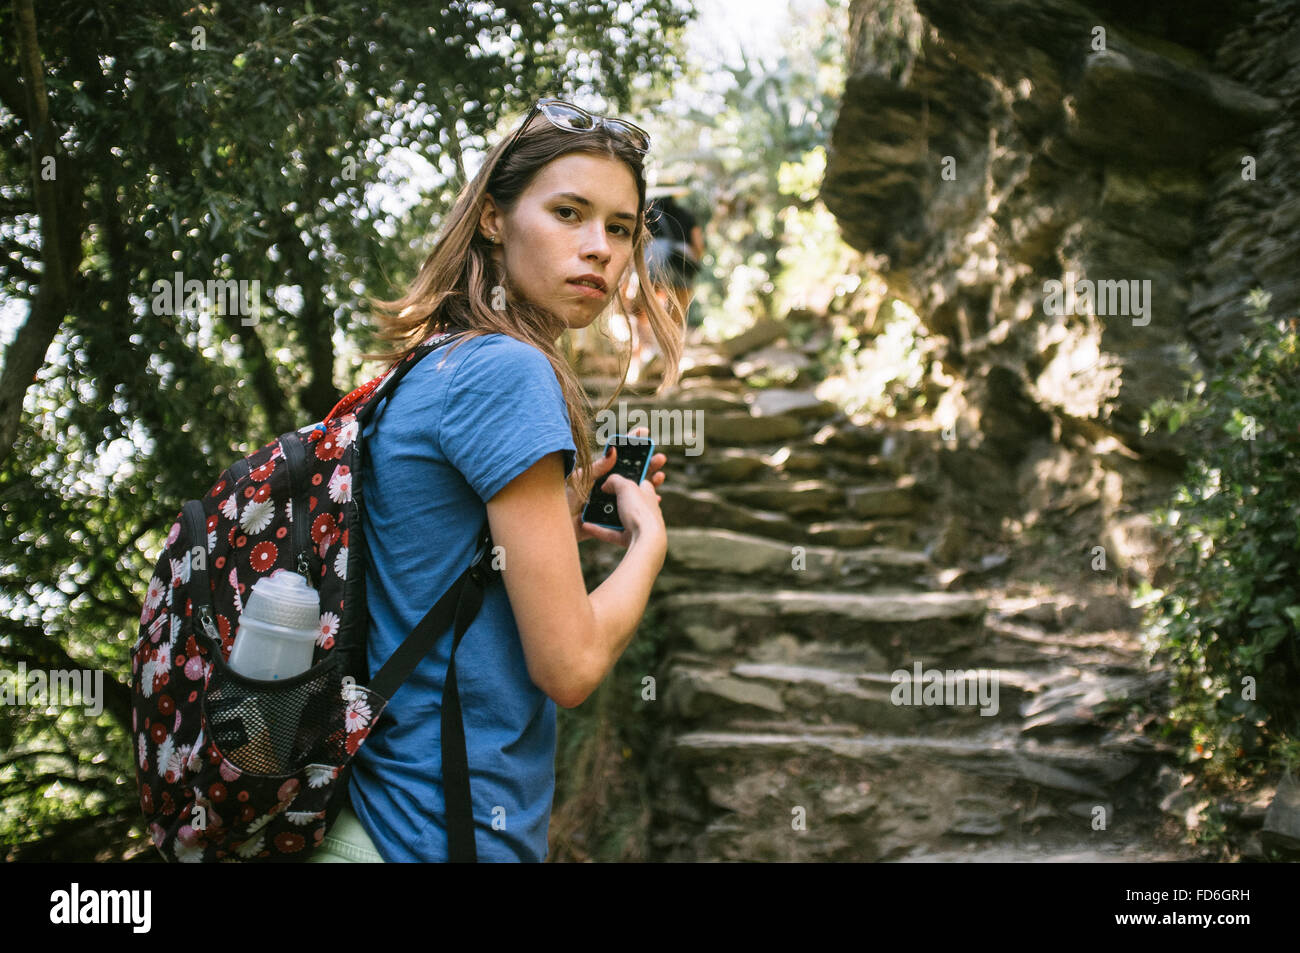 Young Woman At Foot Of Stone Steps - Stock Image